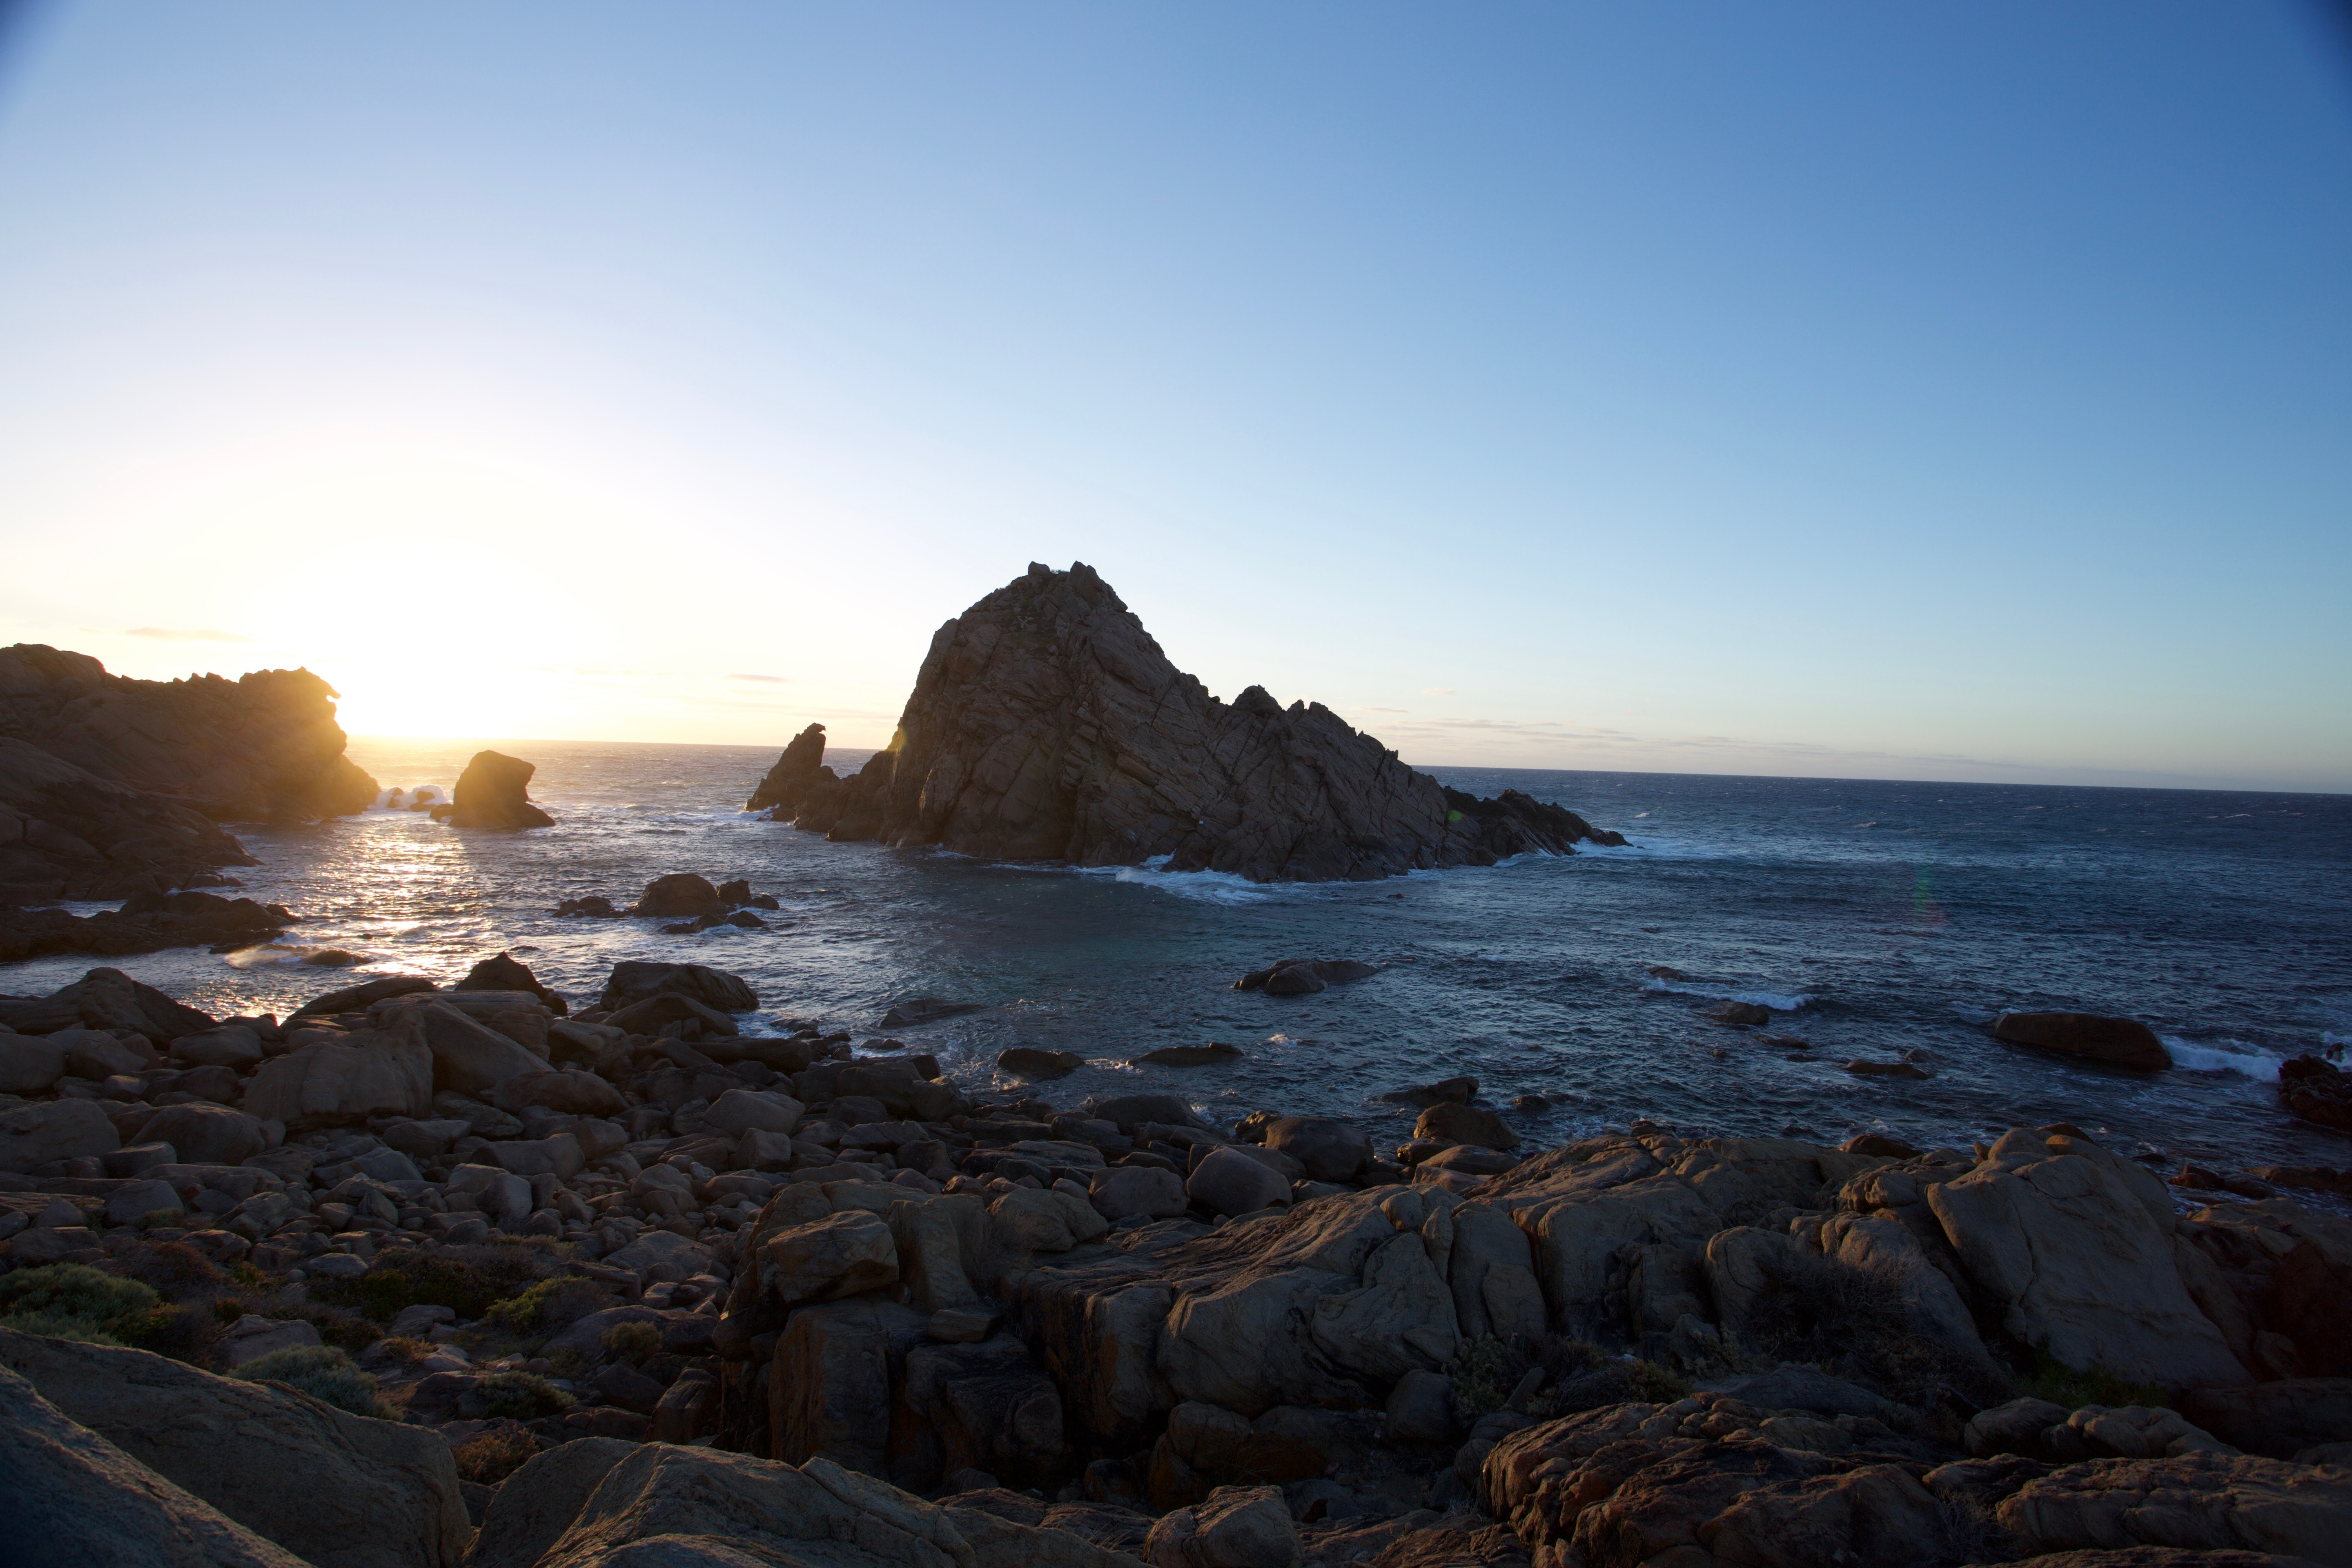 Ocean rock formations by the rocky coast in Dunsborough at sunset